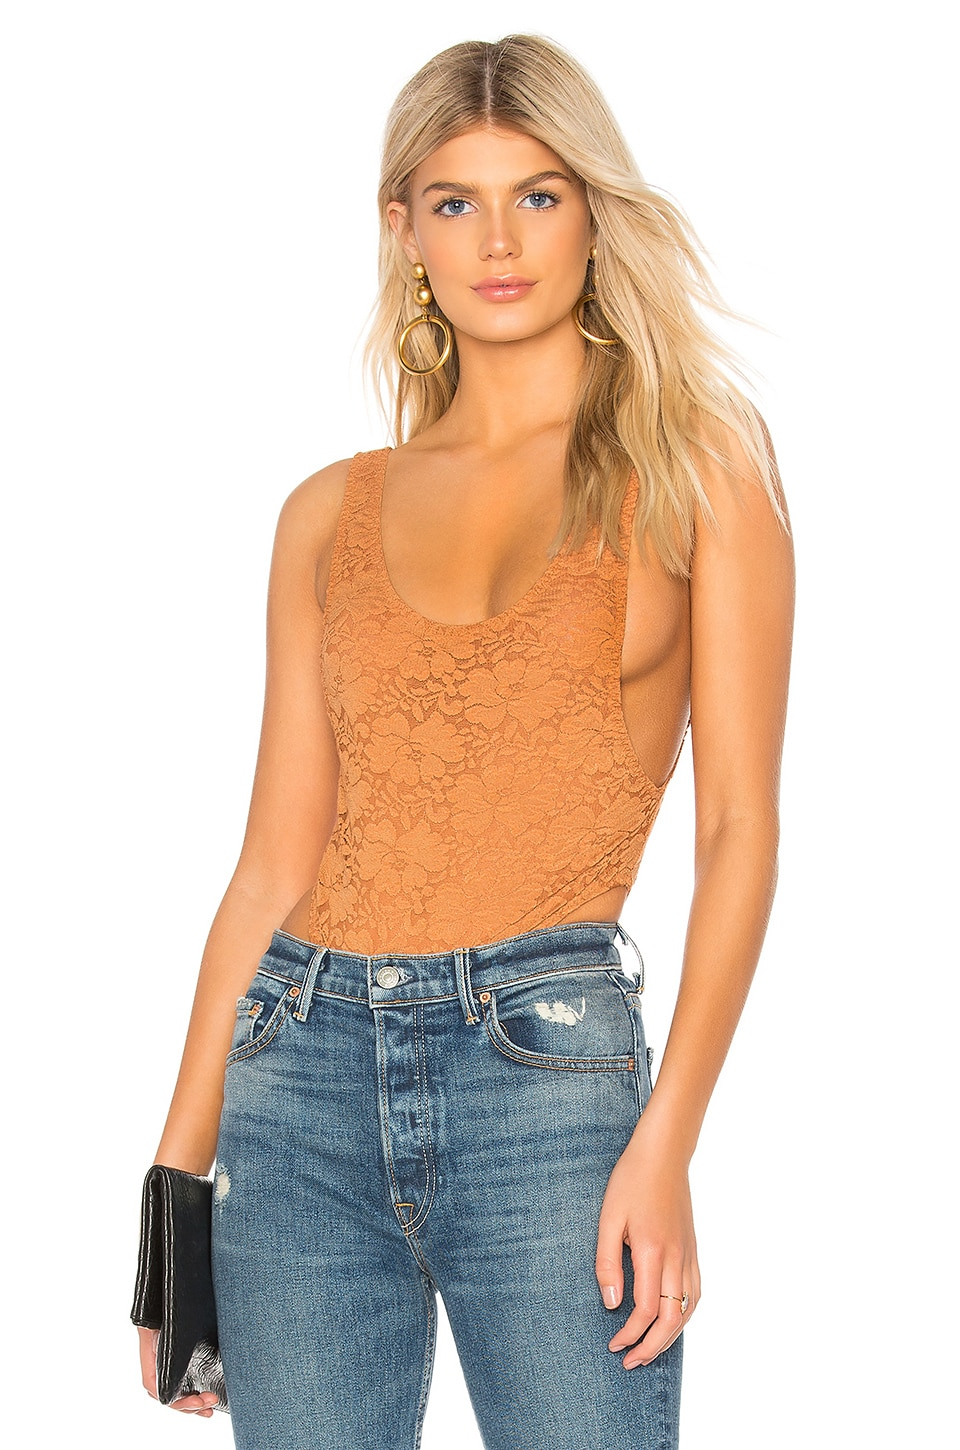 HOT AS HELL REBECCHAH LACE BODYSUIT